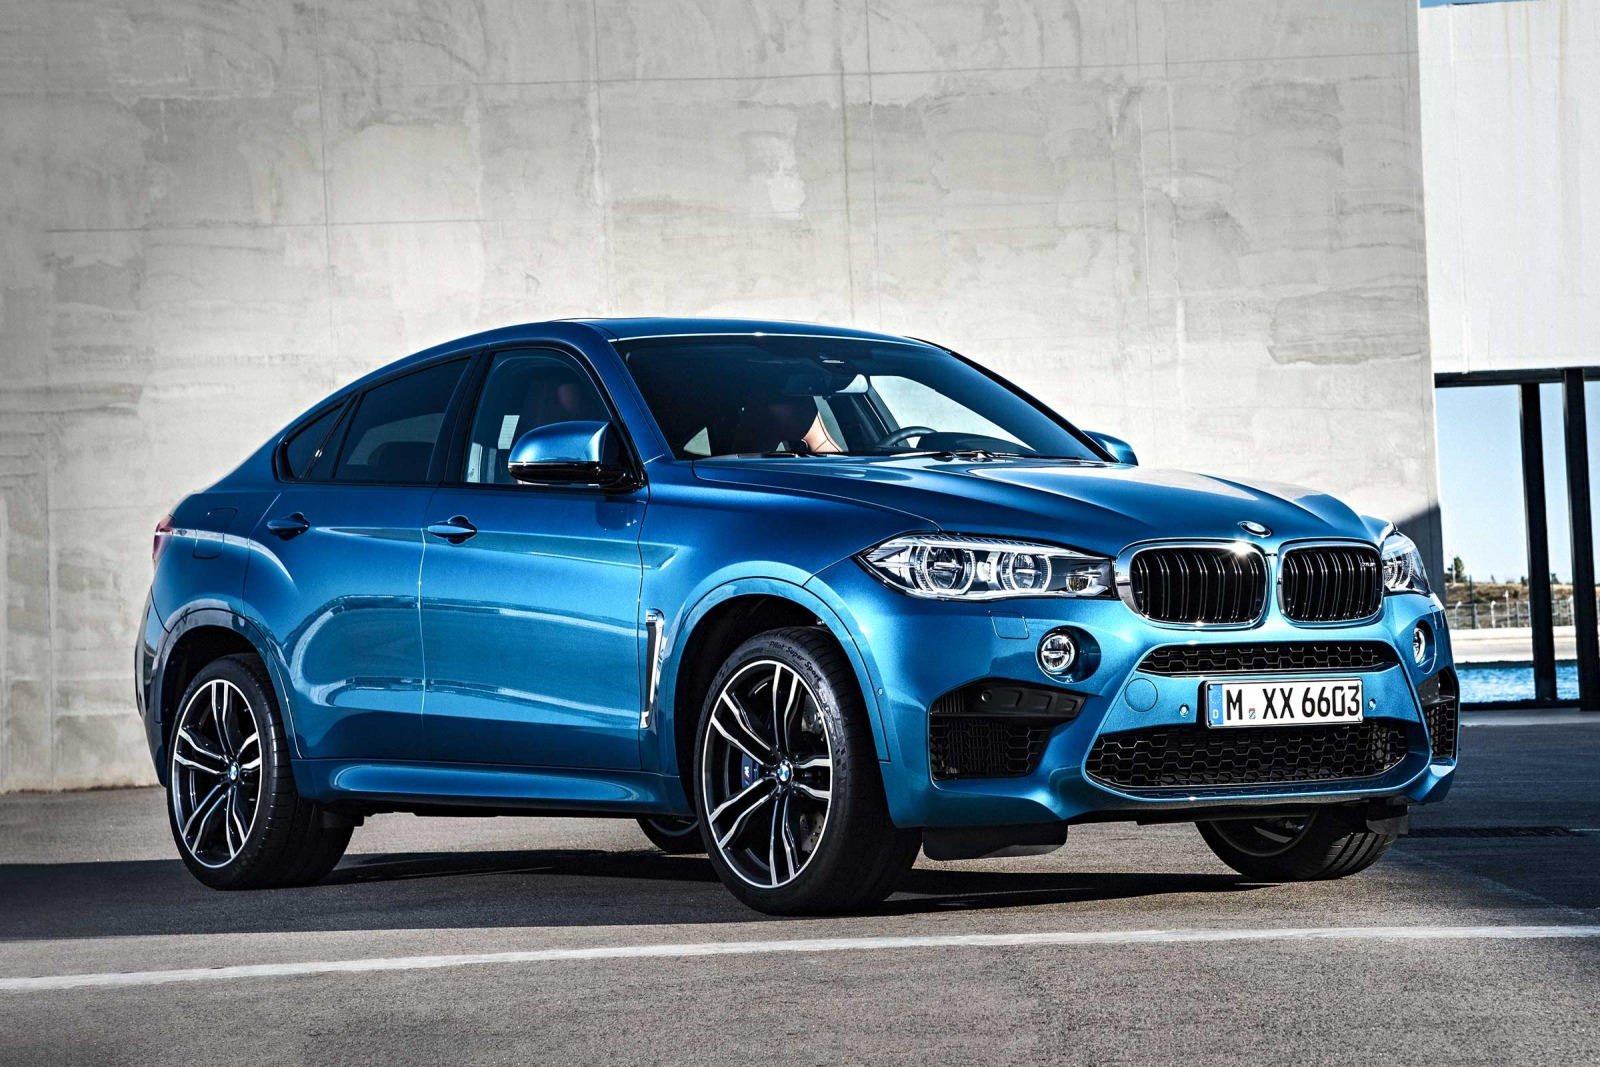 2018 bmw x6 m suv review trims specs and price carbuzz. Black Bedroom Furniture Sets. Home Design Ideas